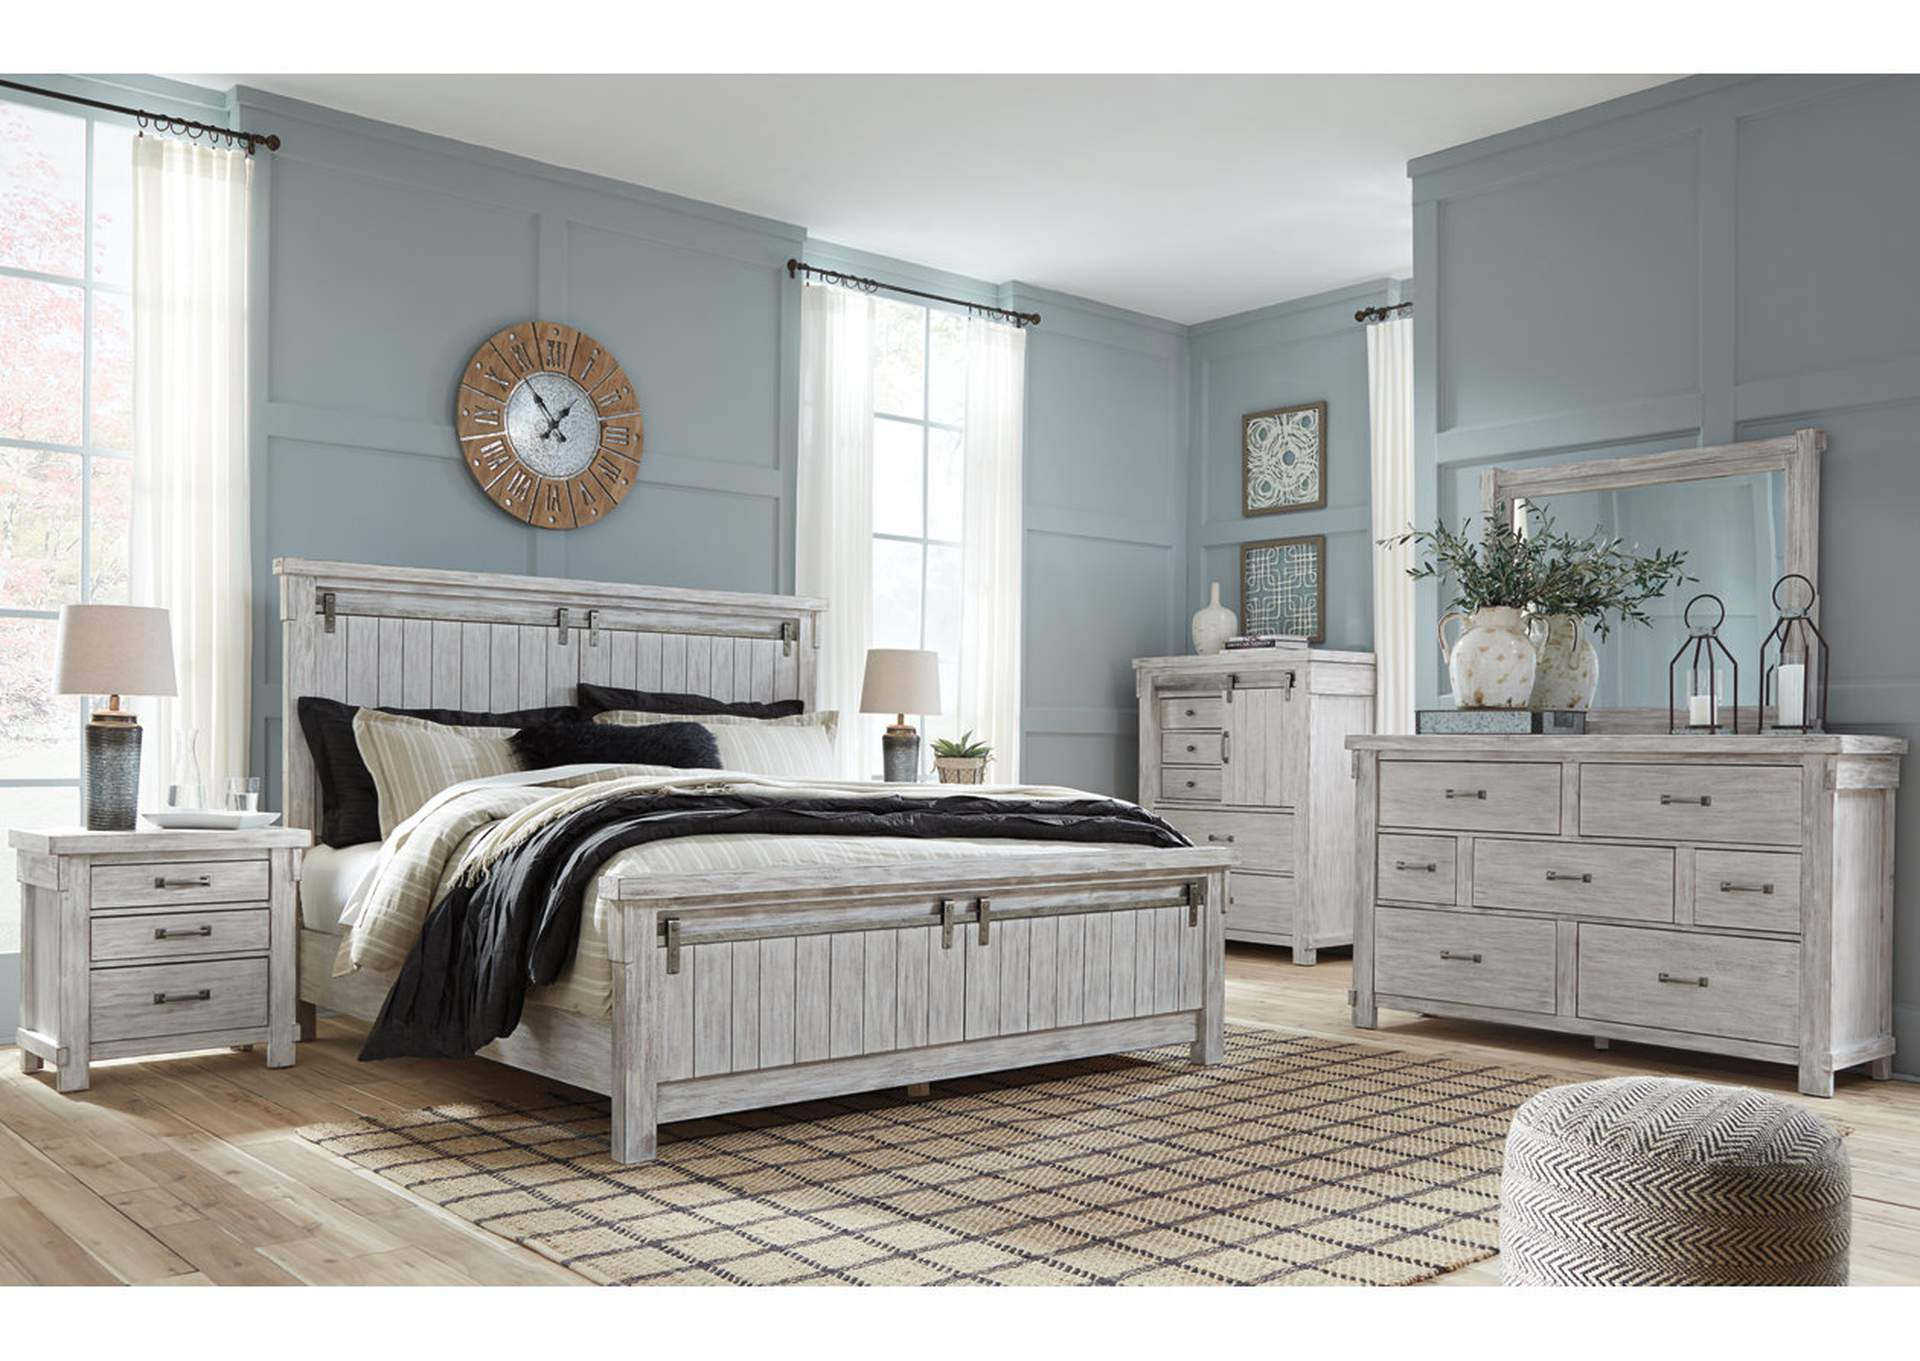 Brashland White Queen Panel Bed w/Dresser and Mirror,Signature Design By Ashley